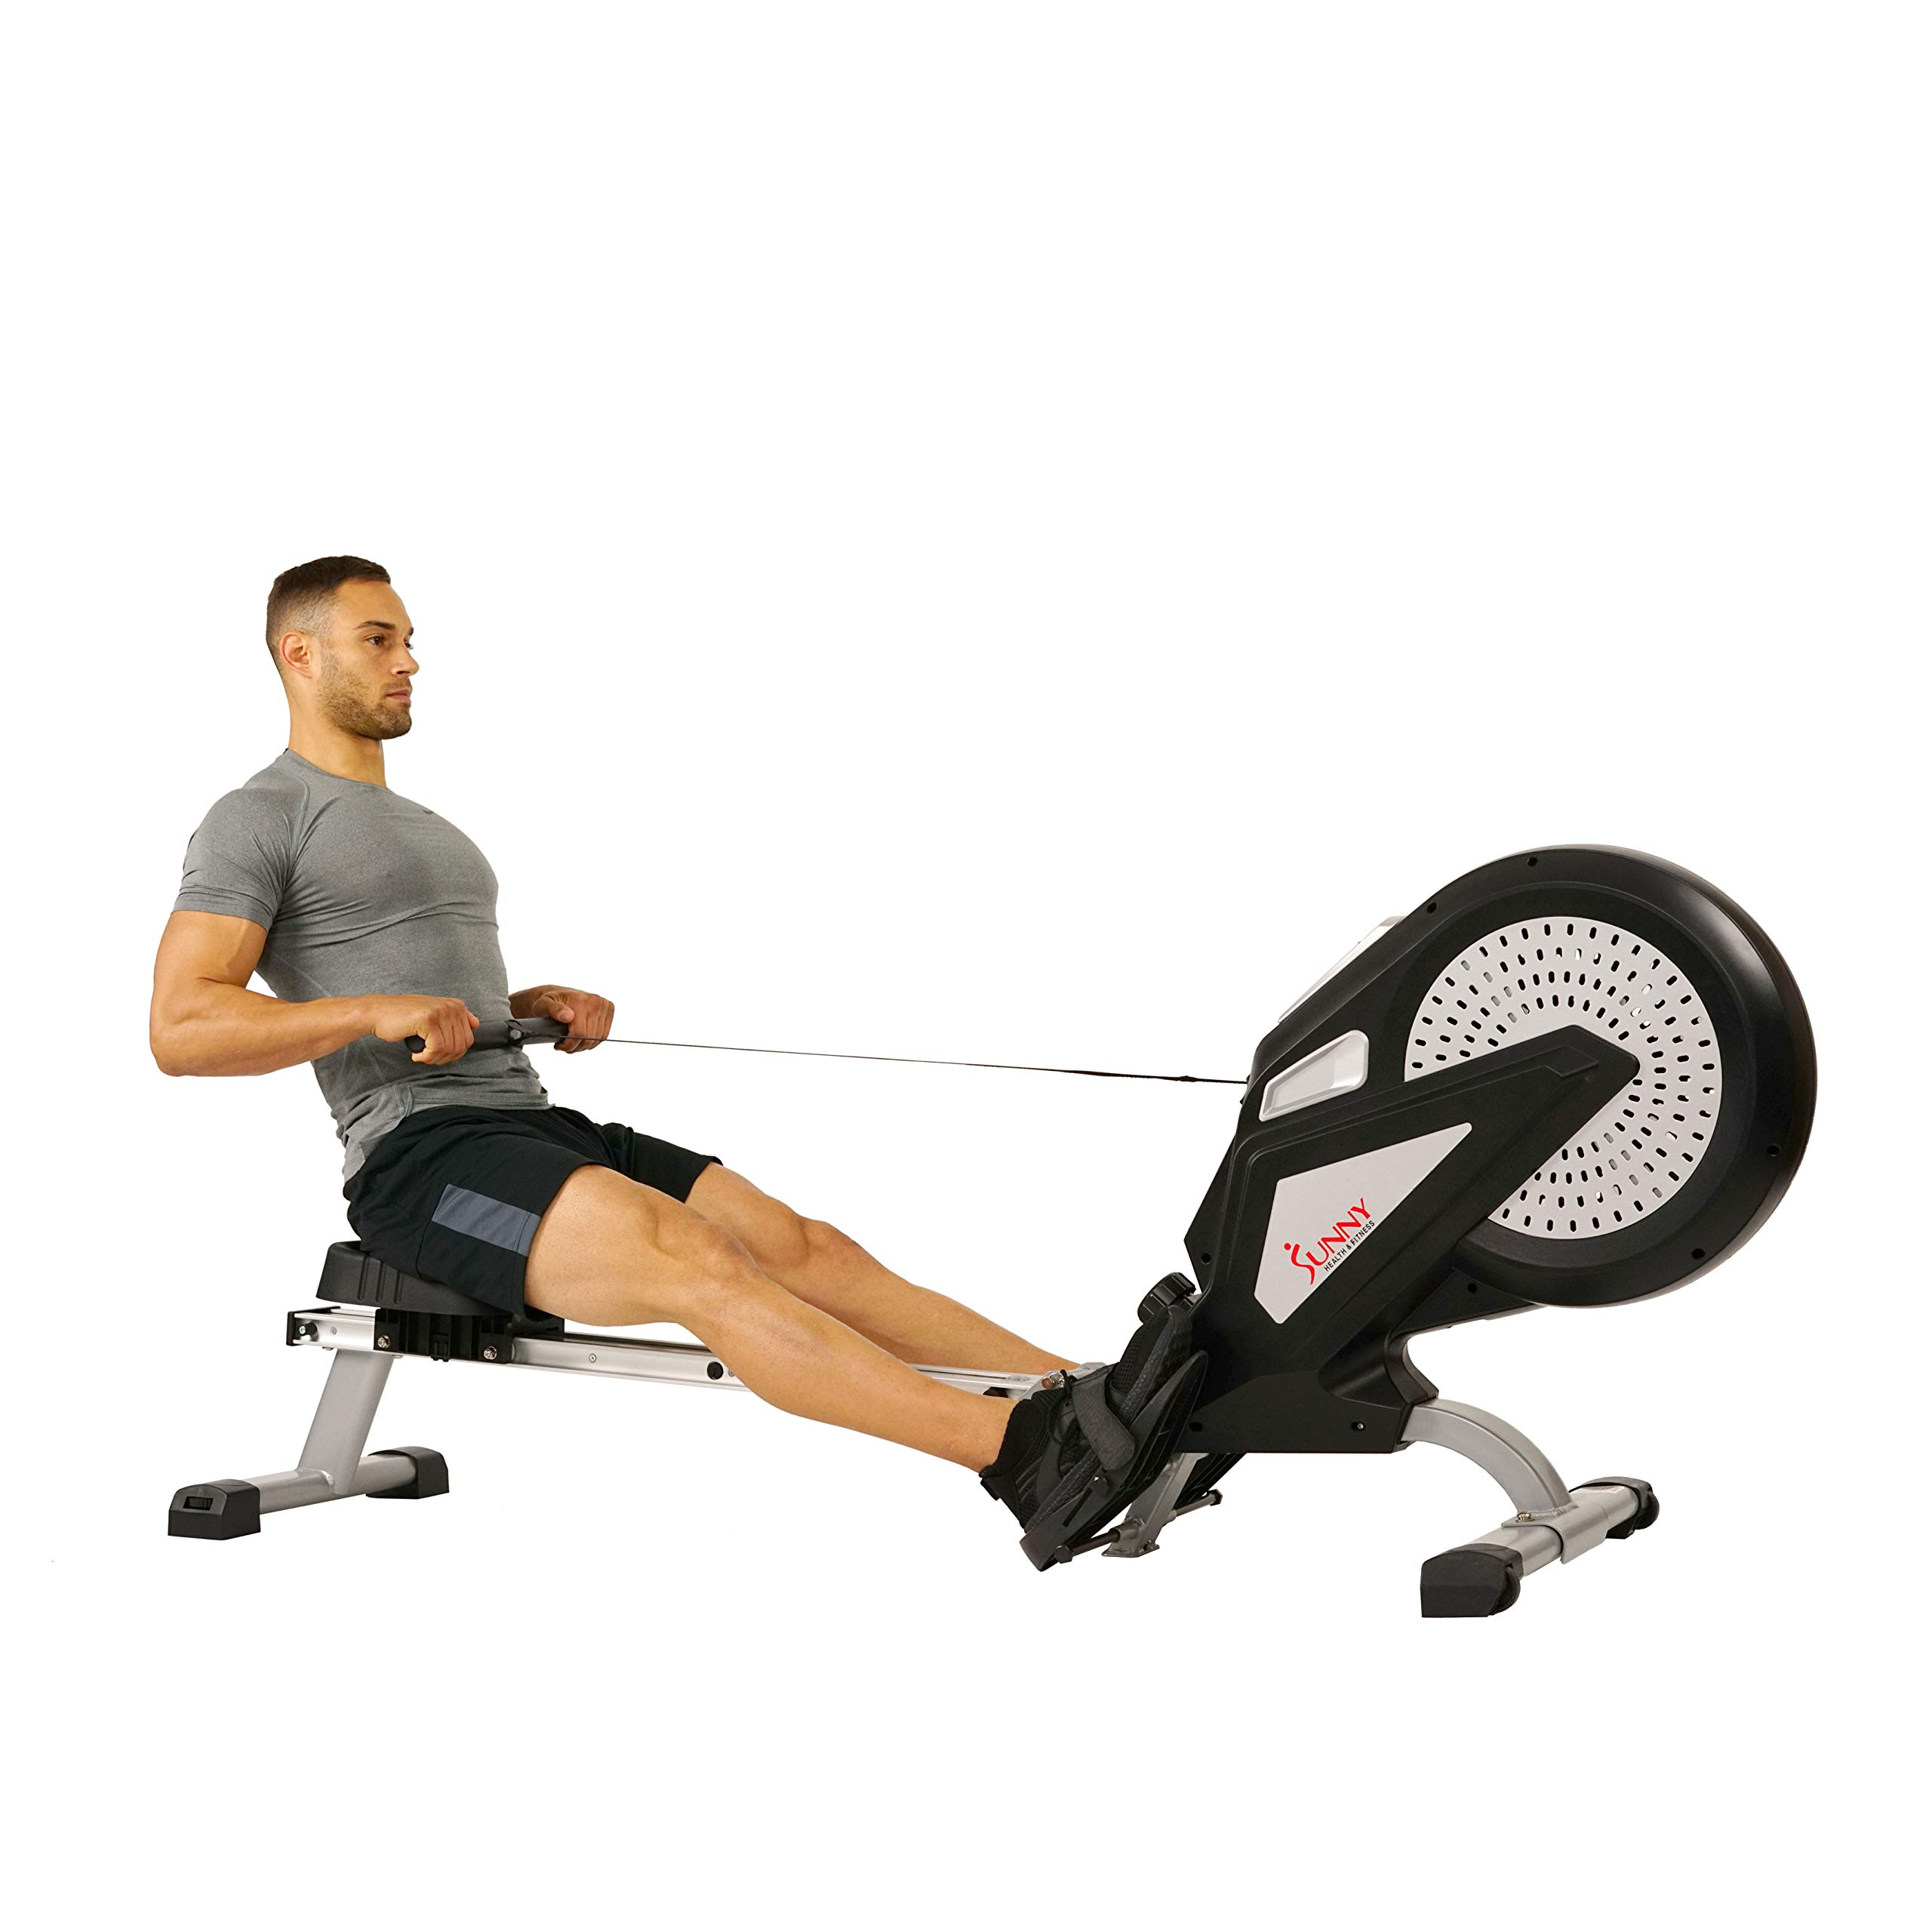 Sunny Health & Fitness Air Rower Rowing Machine w/ LCD Monitor, Dual Belt and Air Resistance SF-RW5623